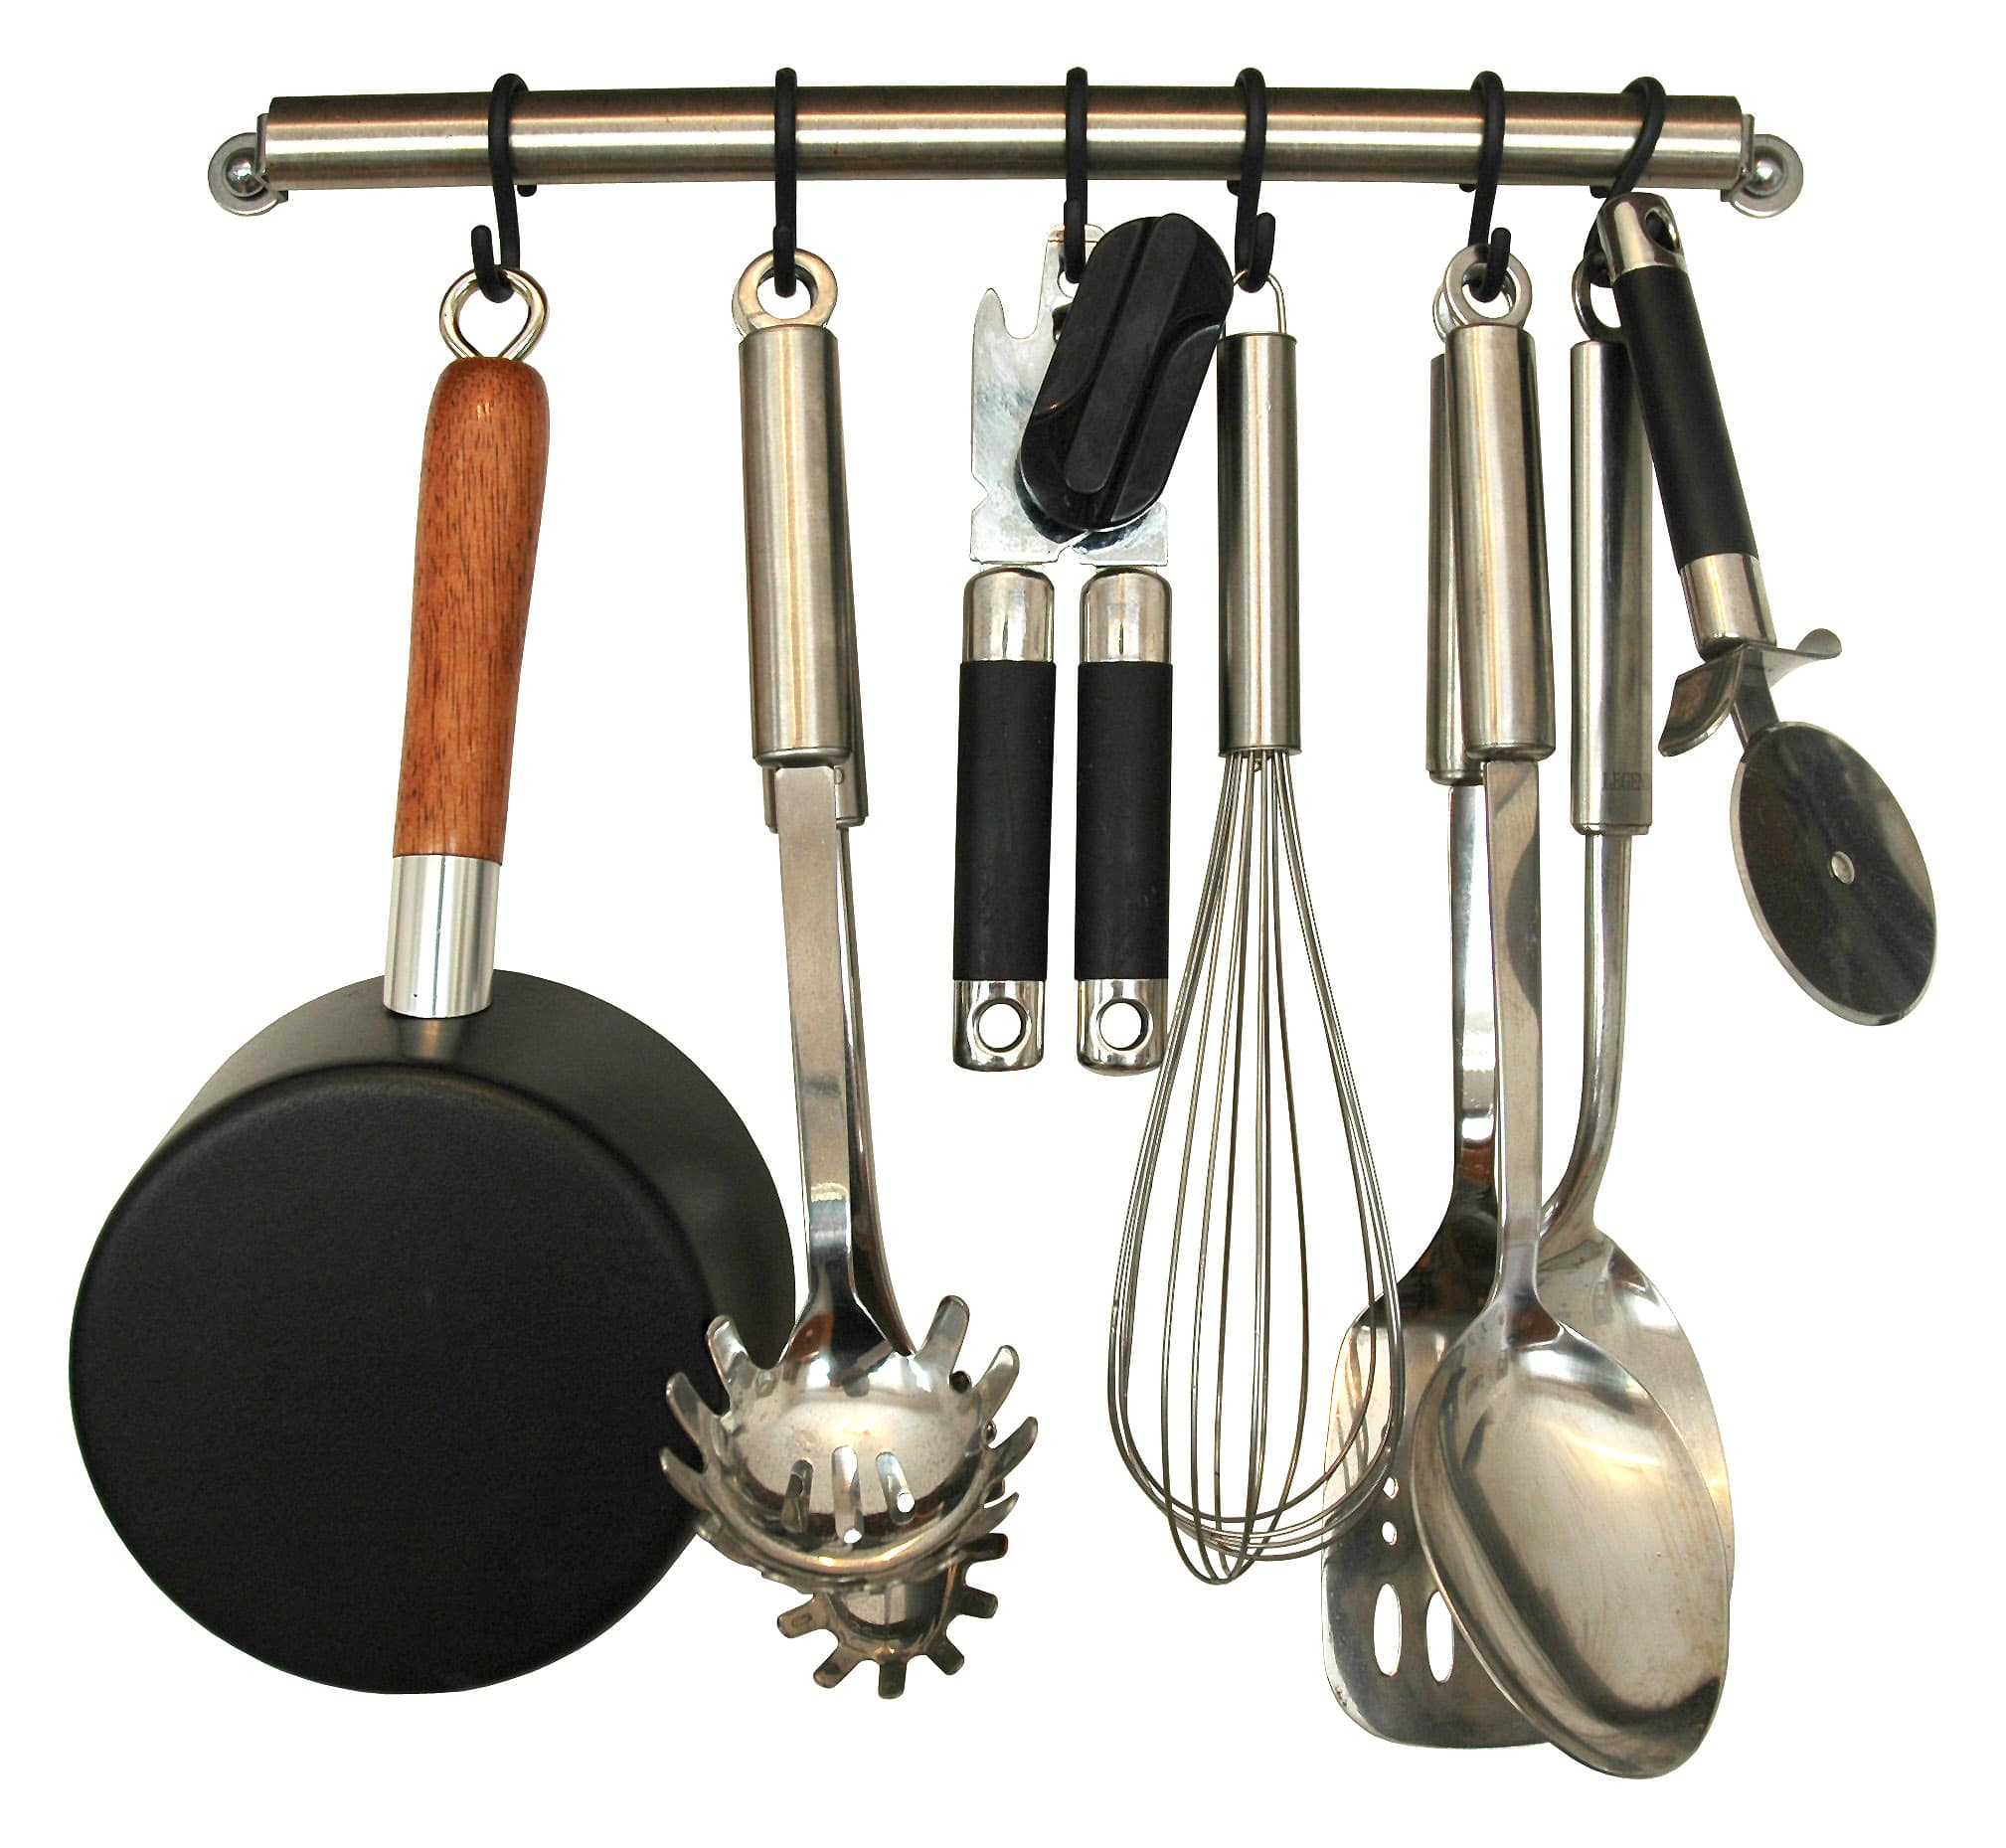 Place kitchen utensils where you will use them